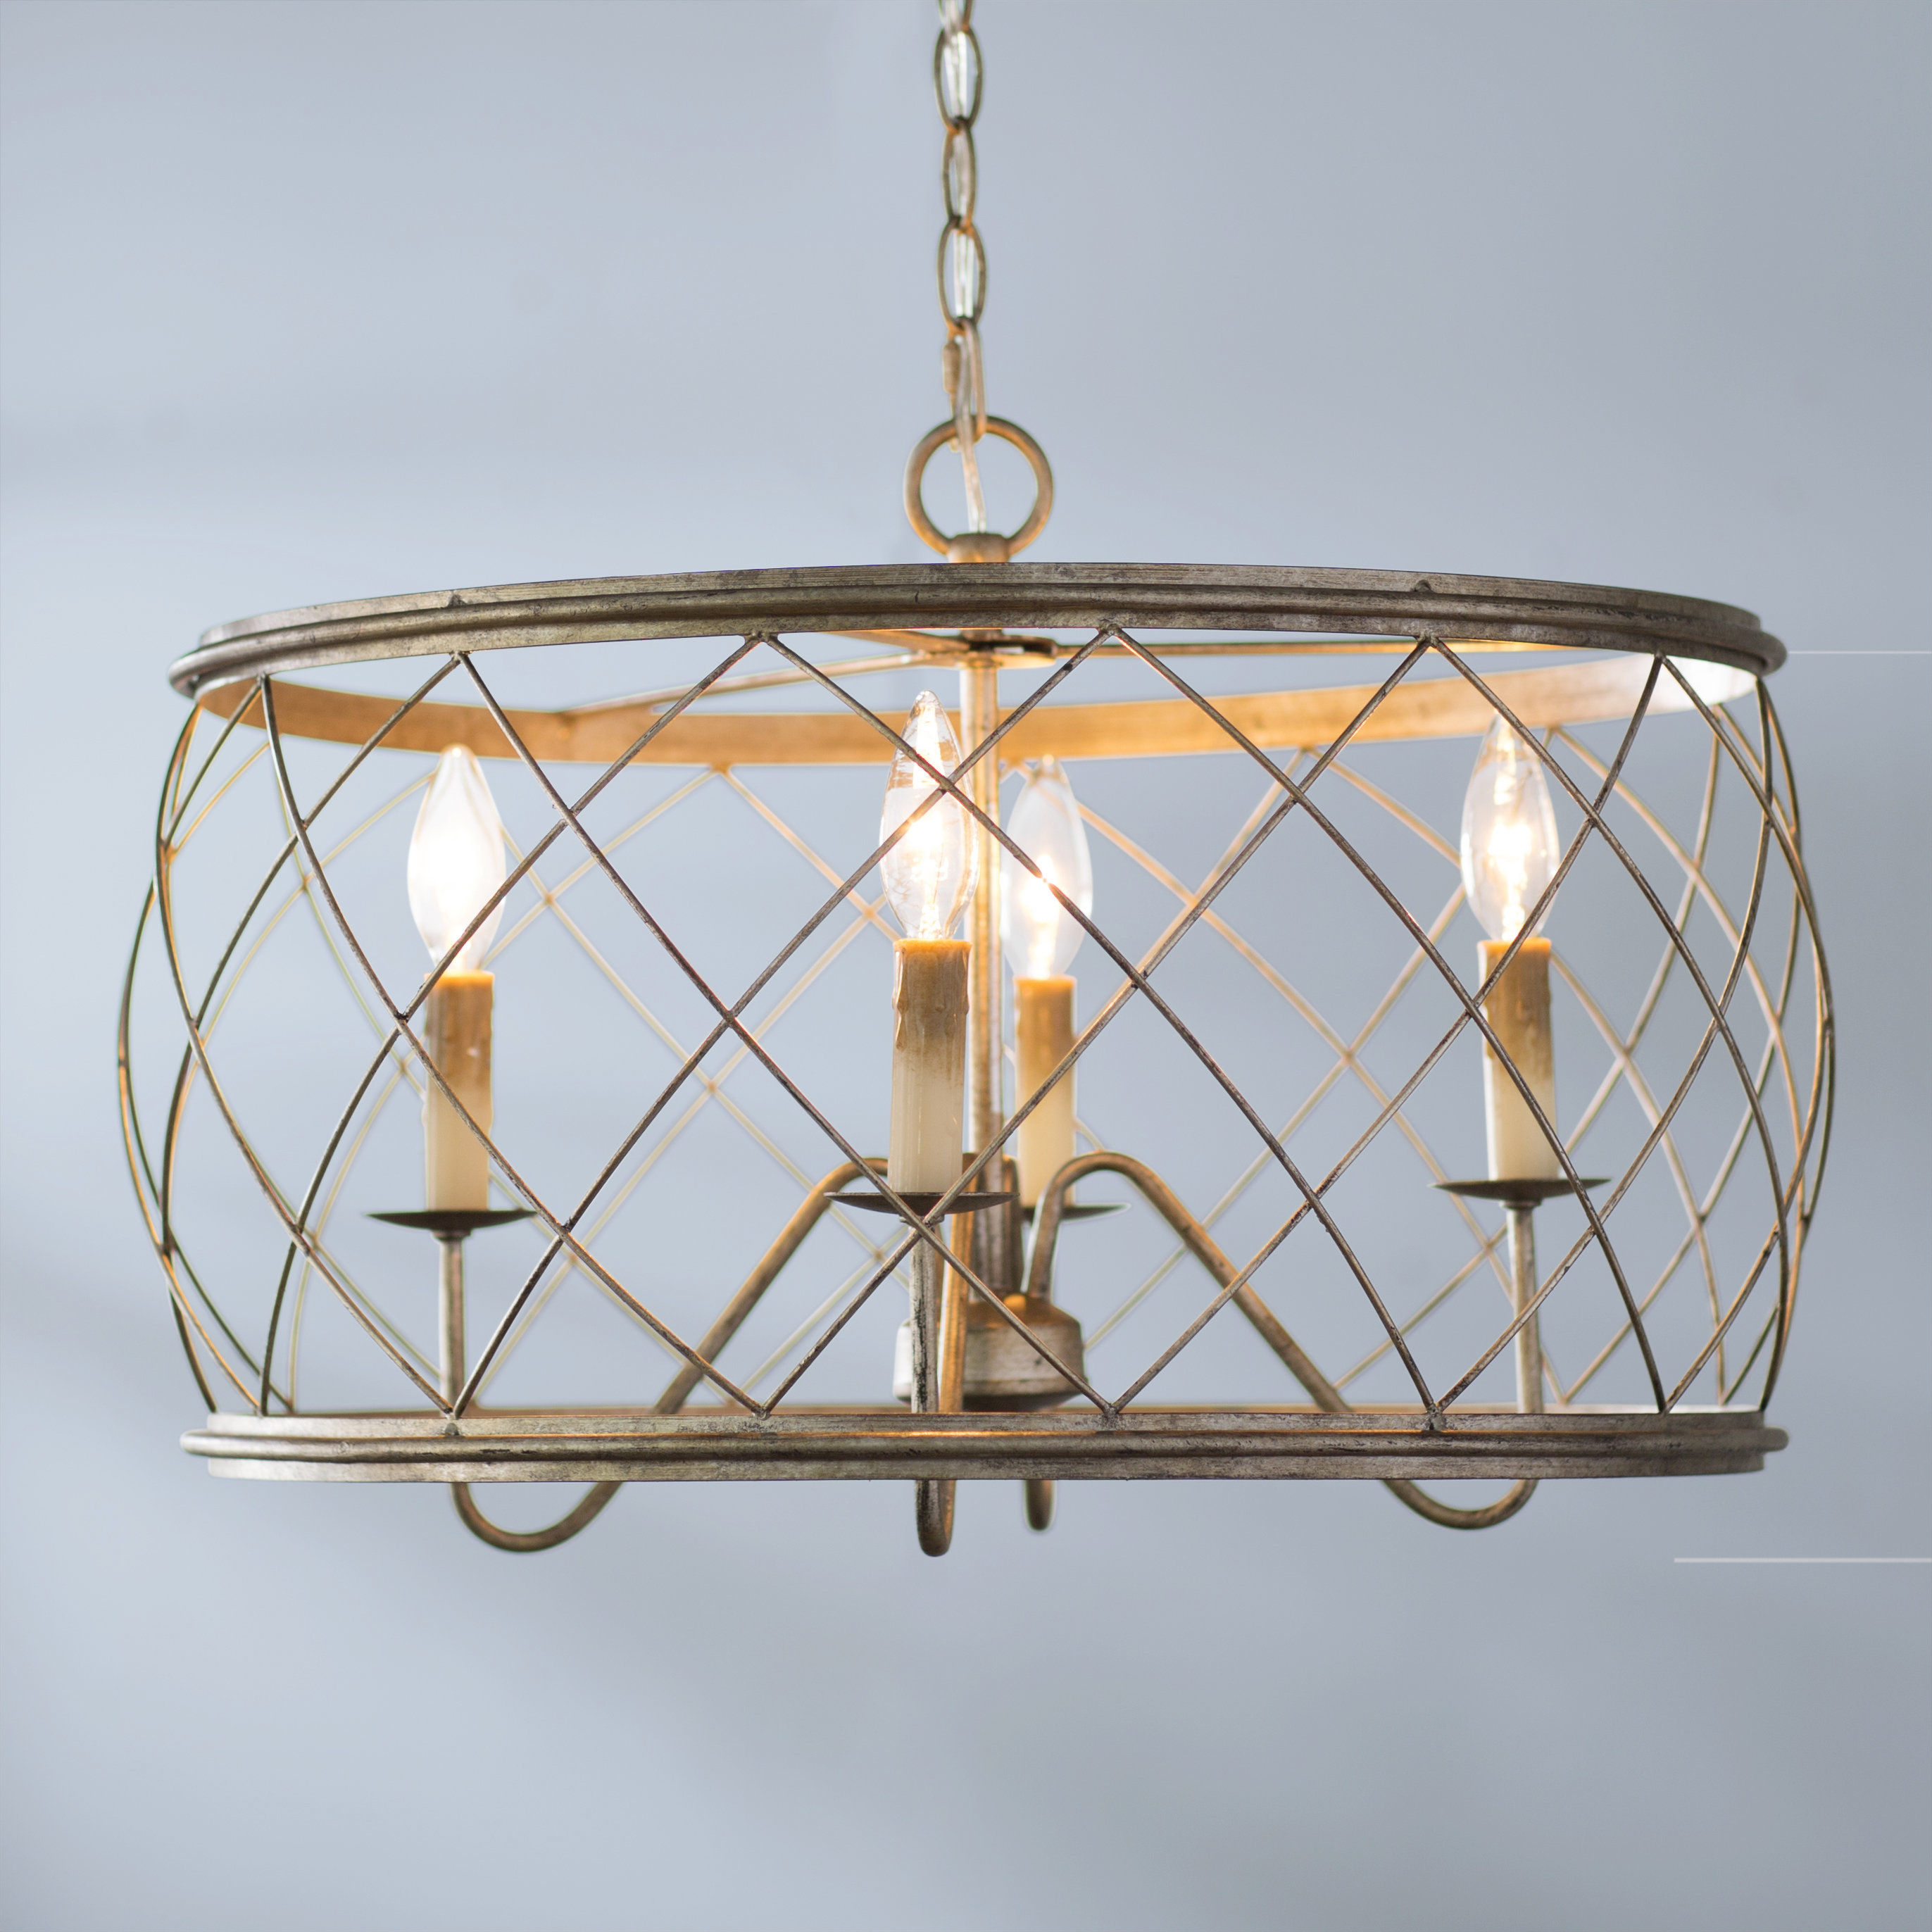 Statement Light Fixture (View 21 of 25)